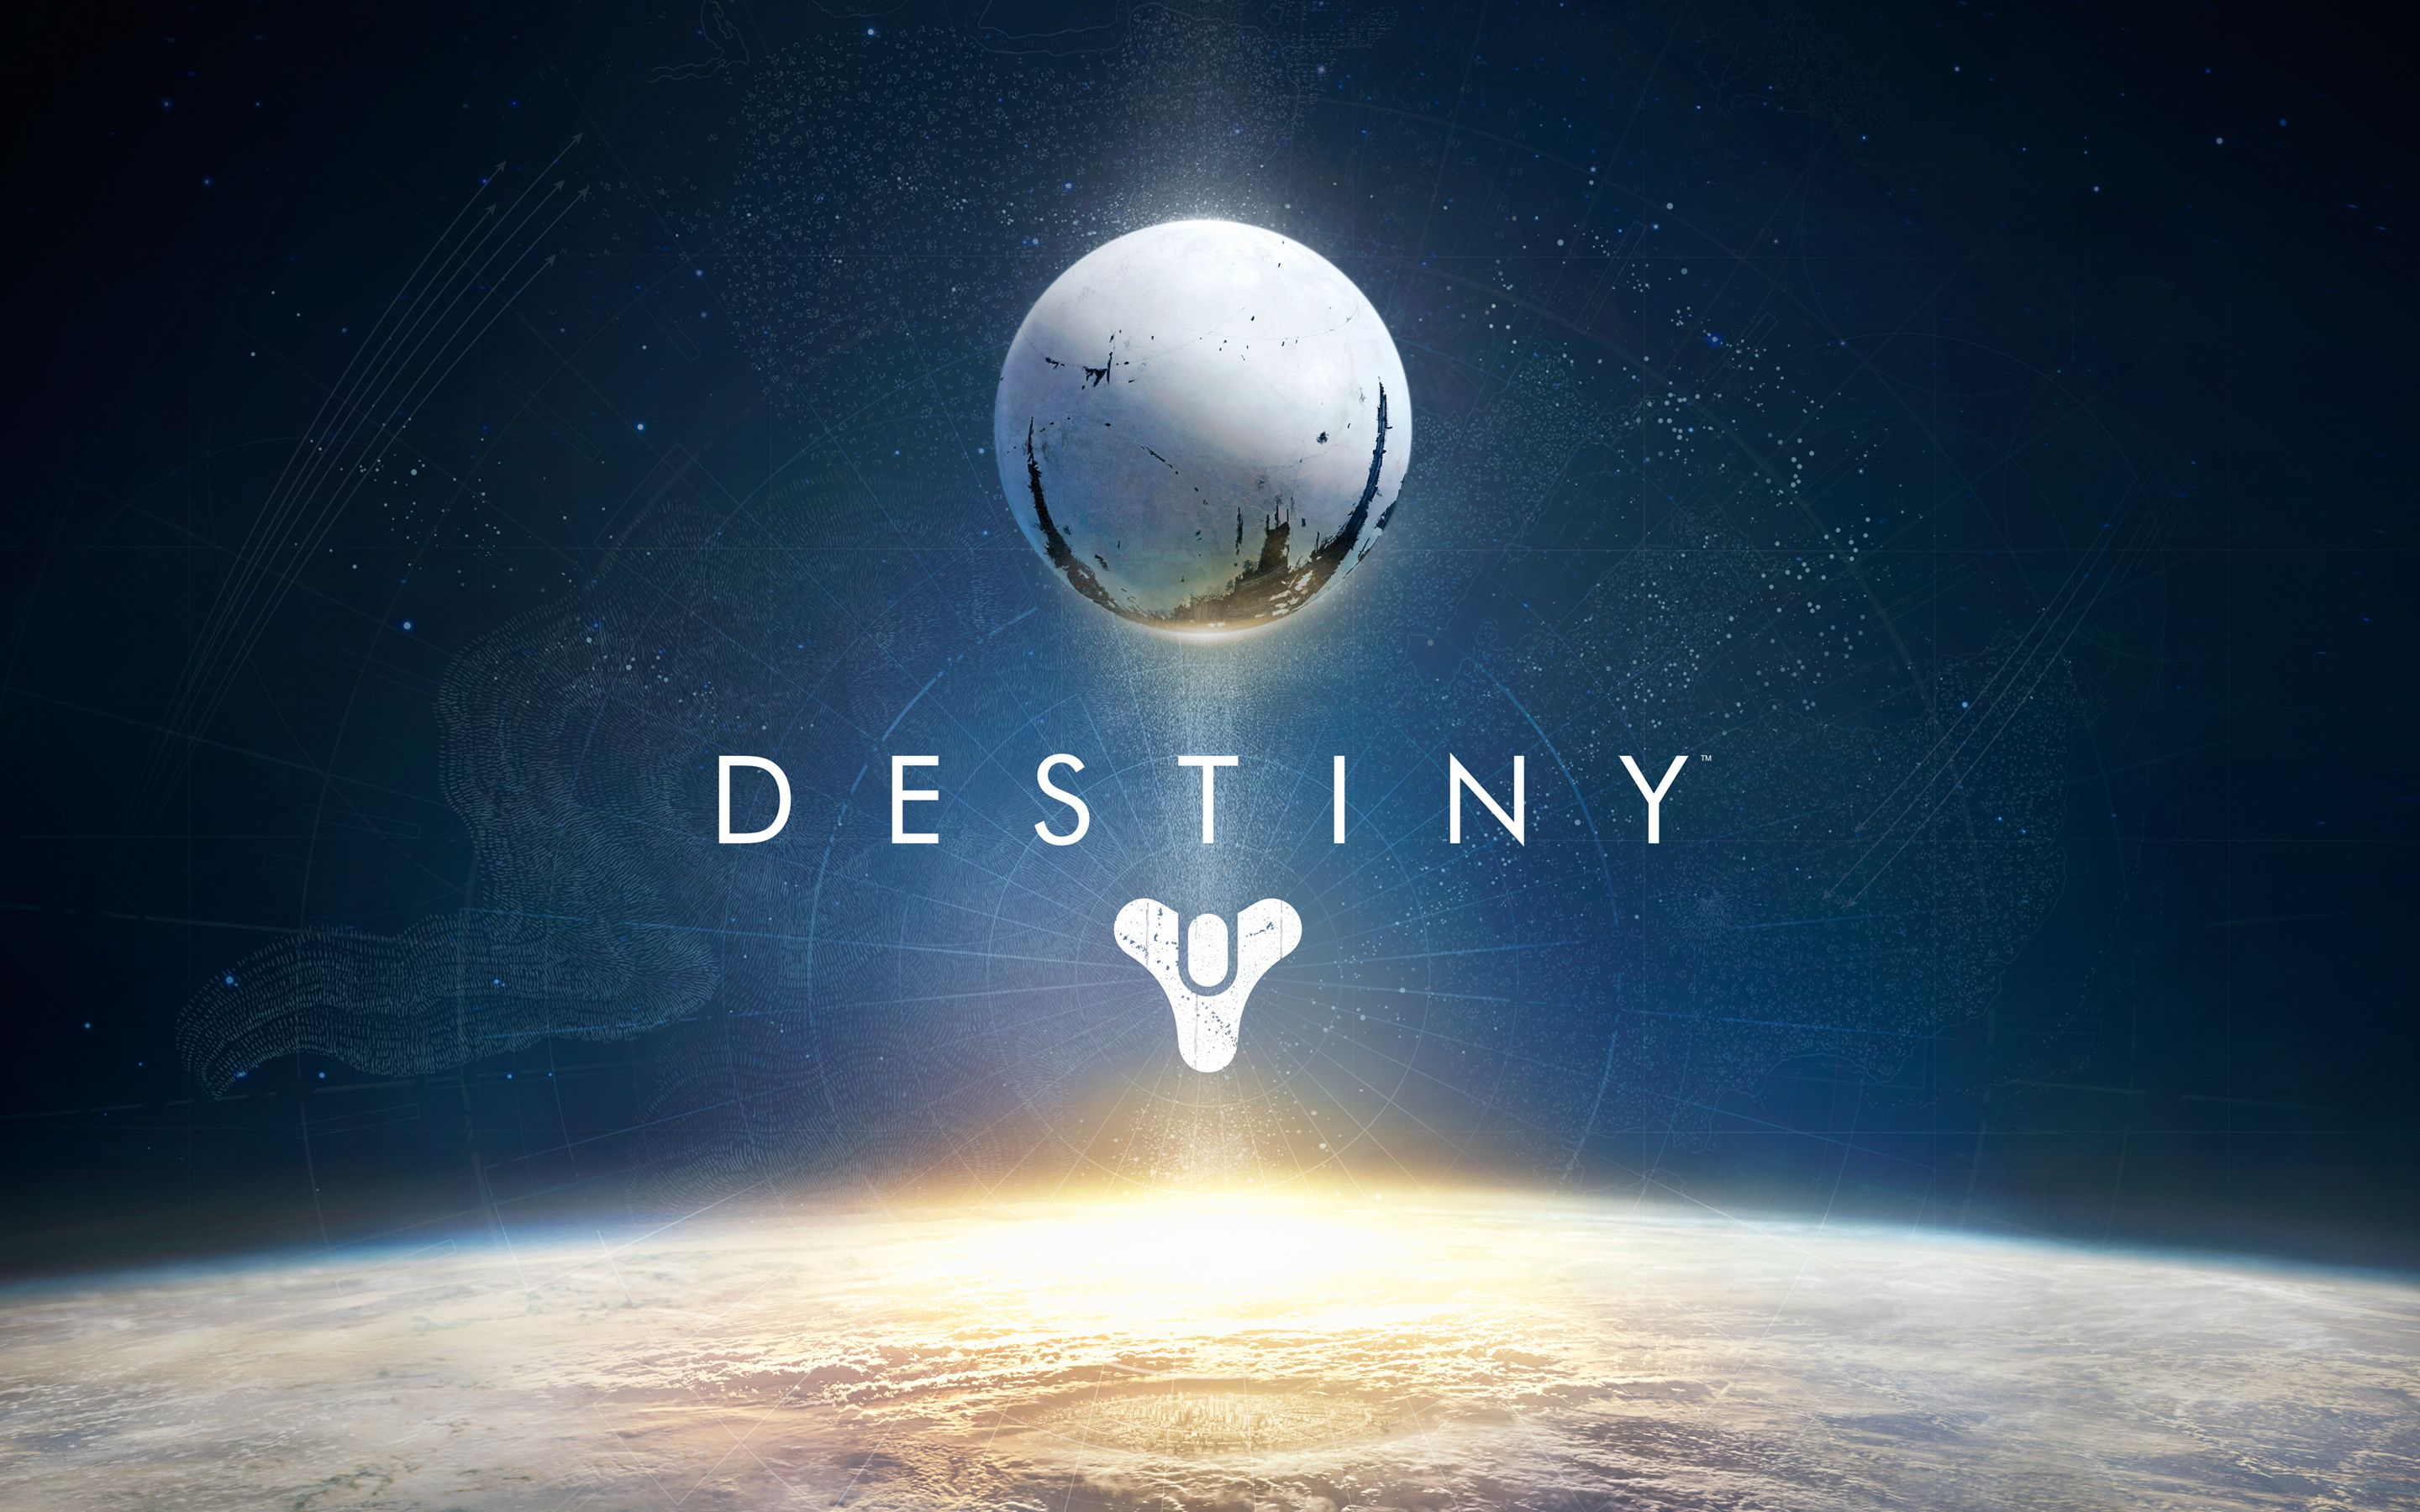 Top #Destiny Facts That You Should Definitely Be Aware Of Read More: